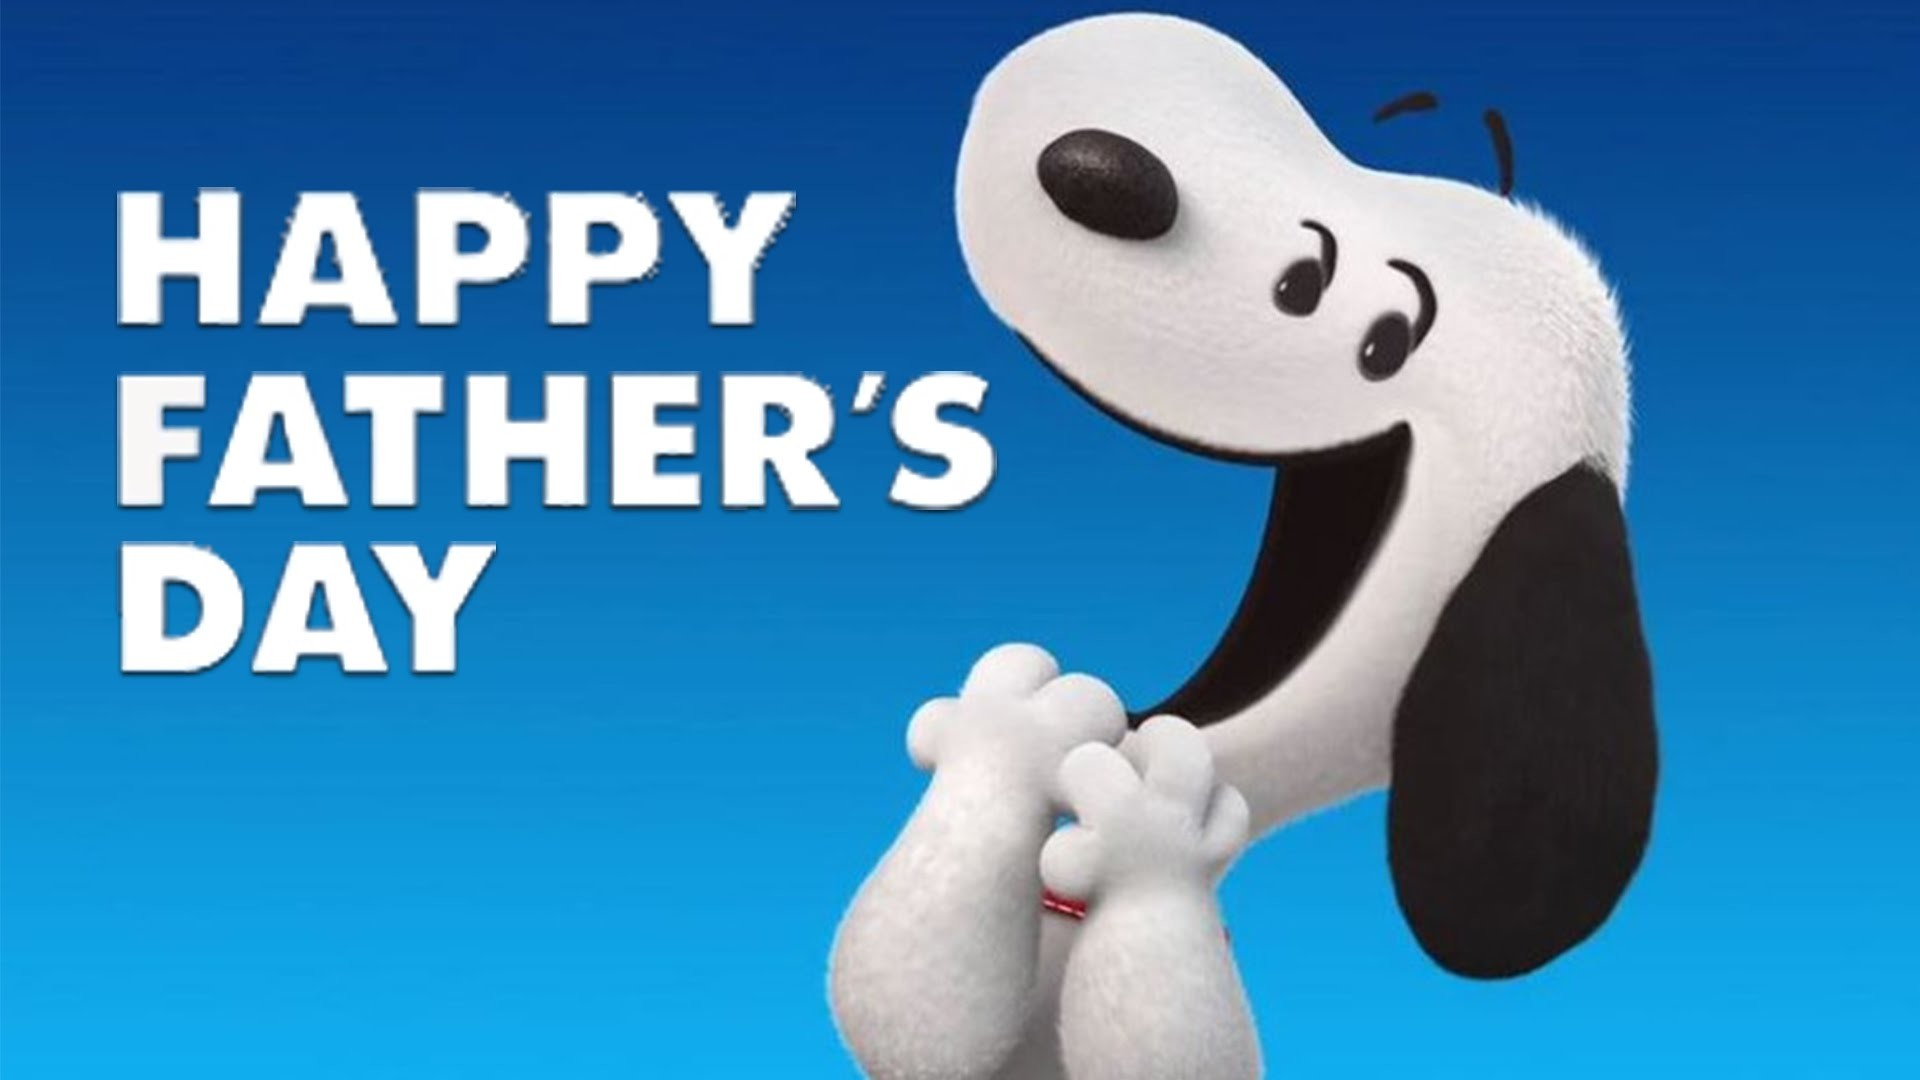 Snoopy Dancing Wallpaper 47 images 1920x1080